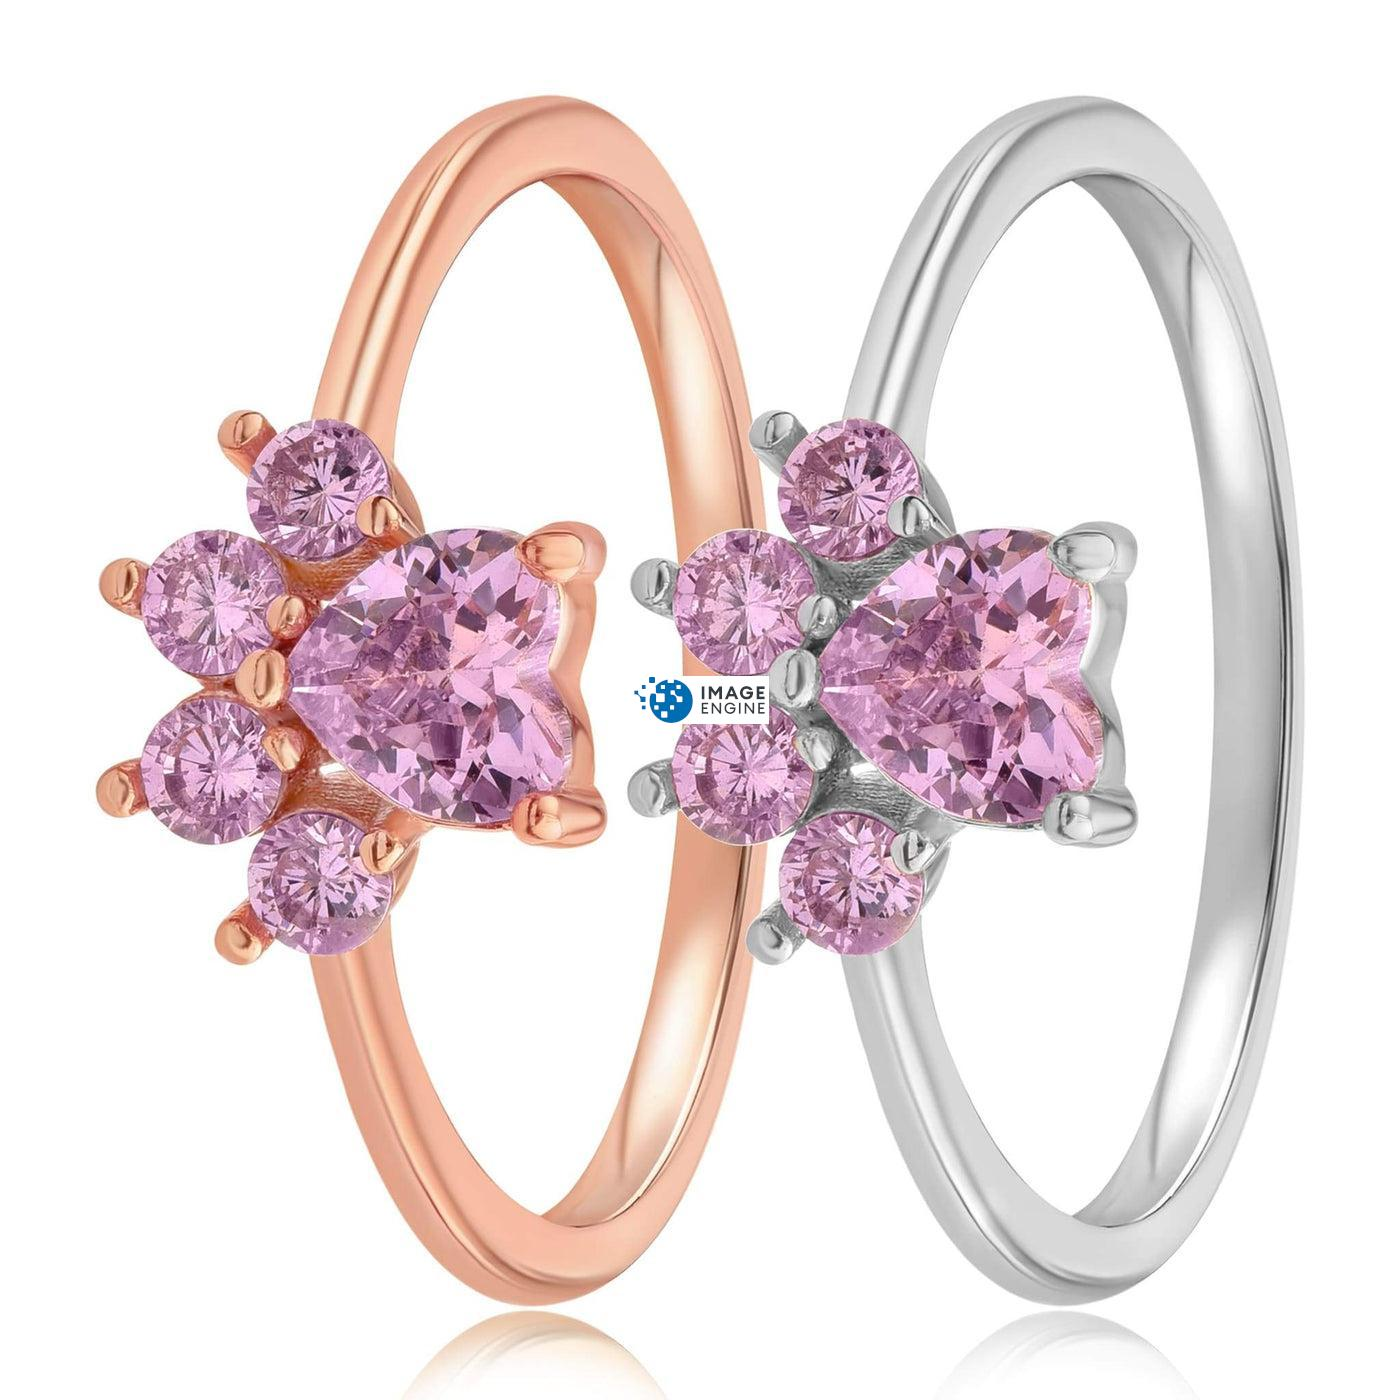 Bella Paw Rose Quartz Ring - Side By Side - 925 Sterling Silver and 18K Rose Gold Vermeil